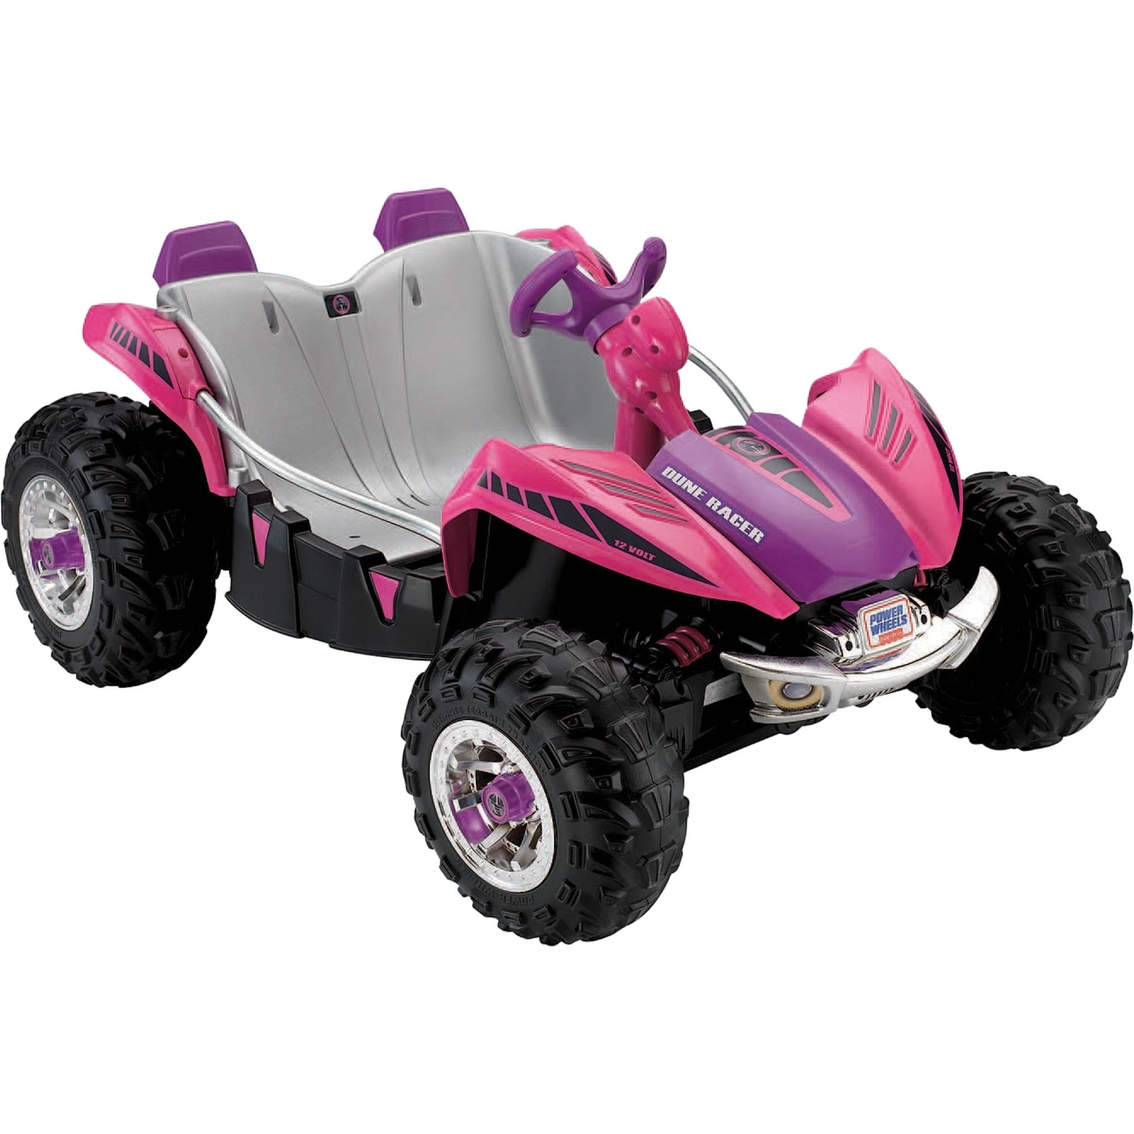 Fisher price power wheels dune racer battery powered for Fisher price motorized cars